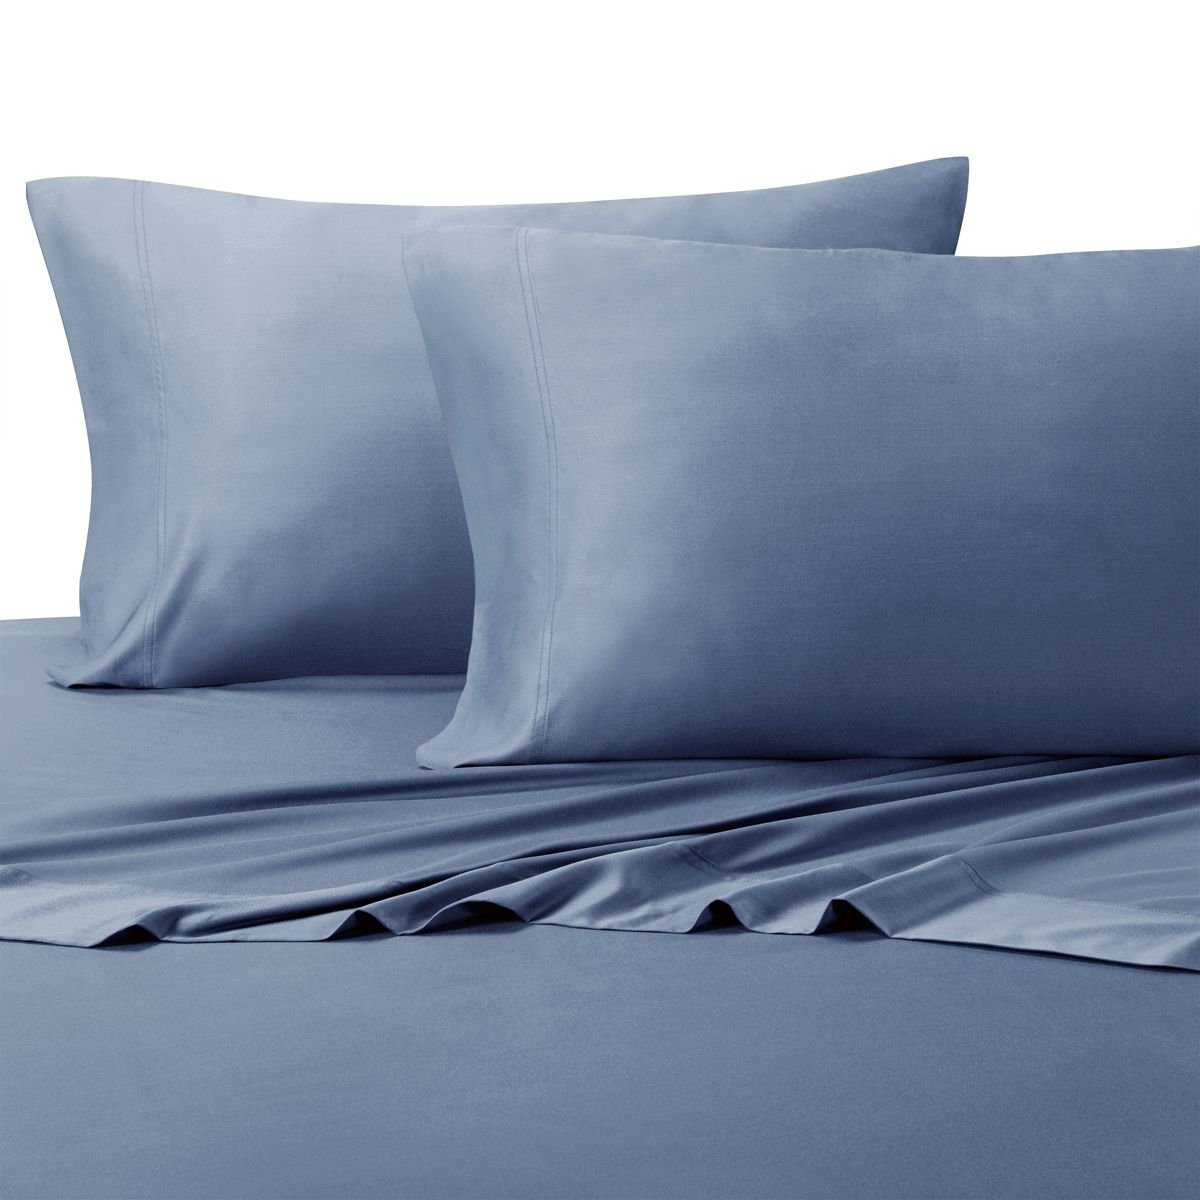 Royal Hotel Silky Soft Bamboo California King Cotton Sheet Set - Periwinkle